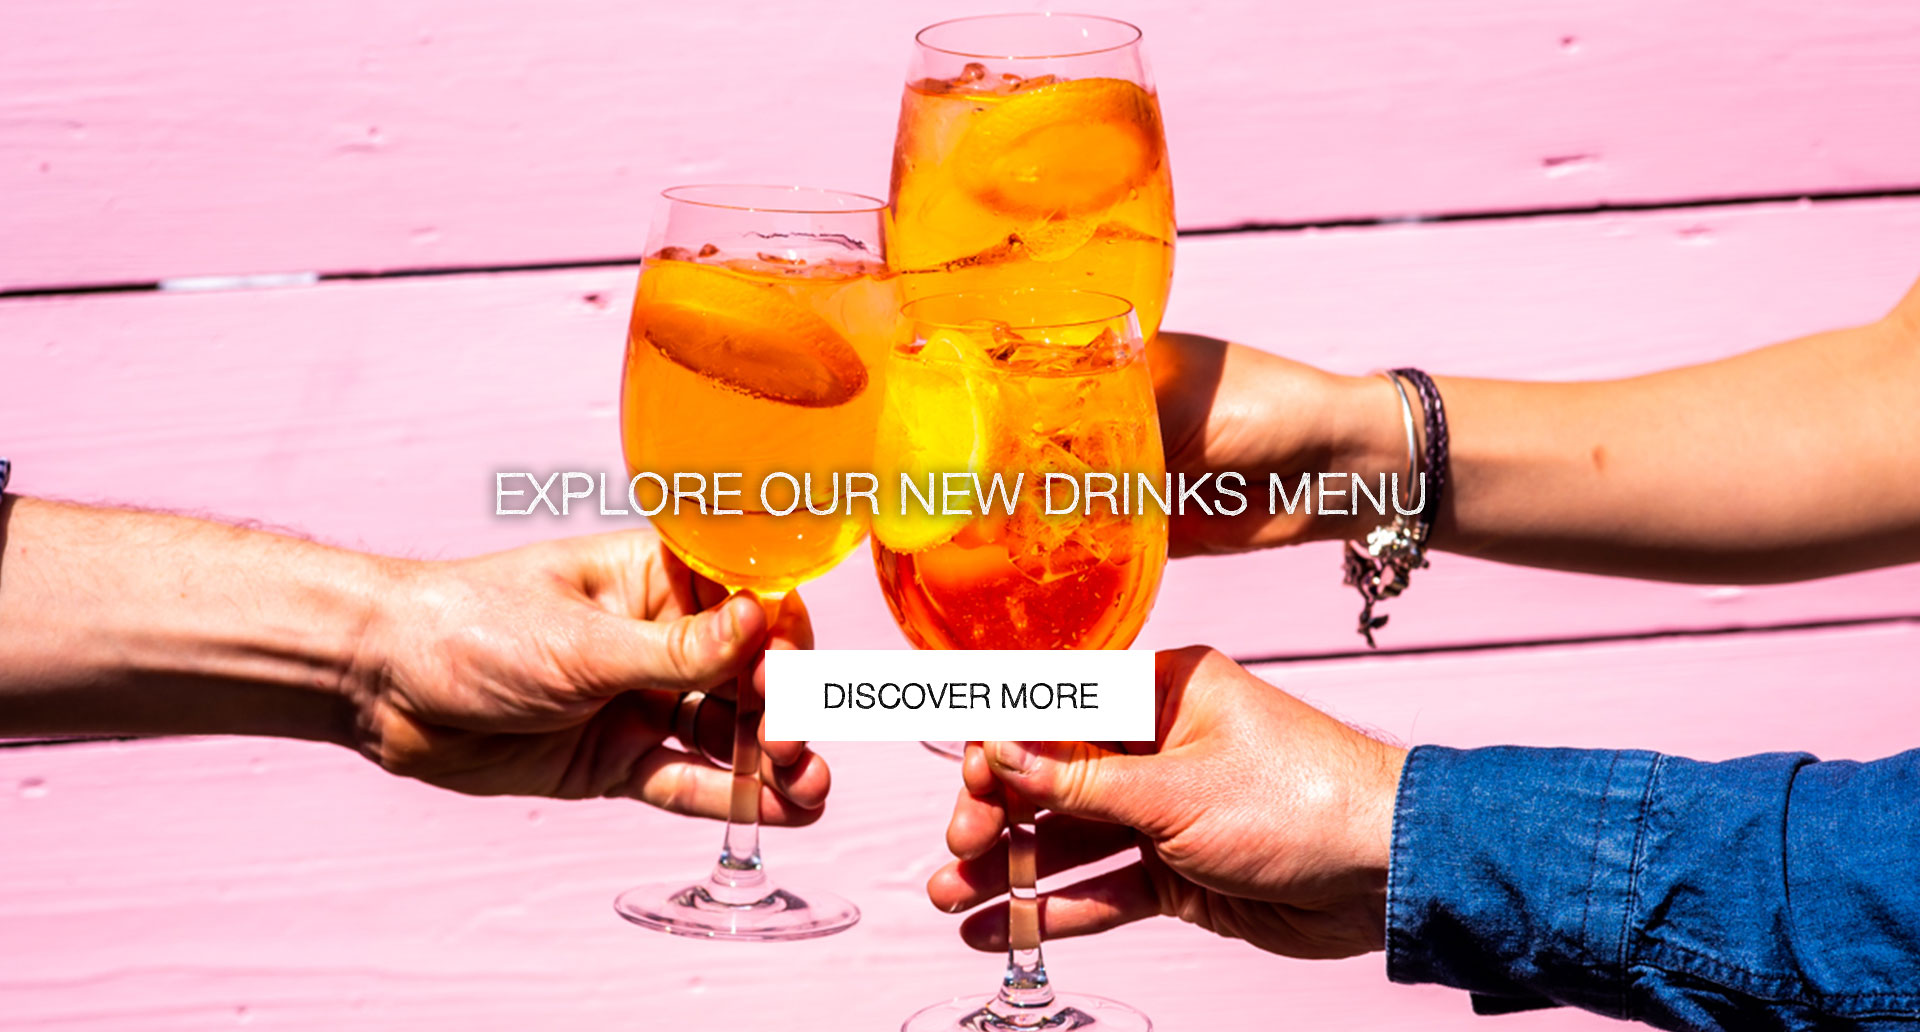 Our New Drinks Menu at Sixty Million Postcards